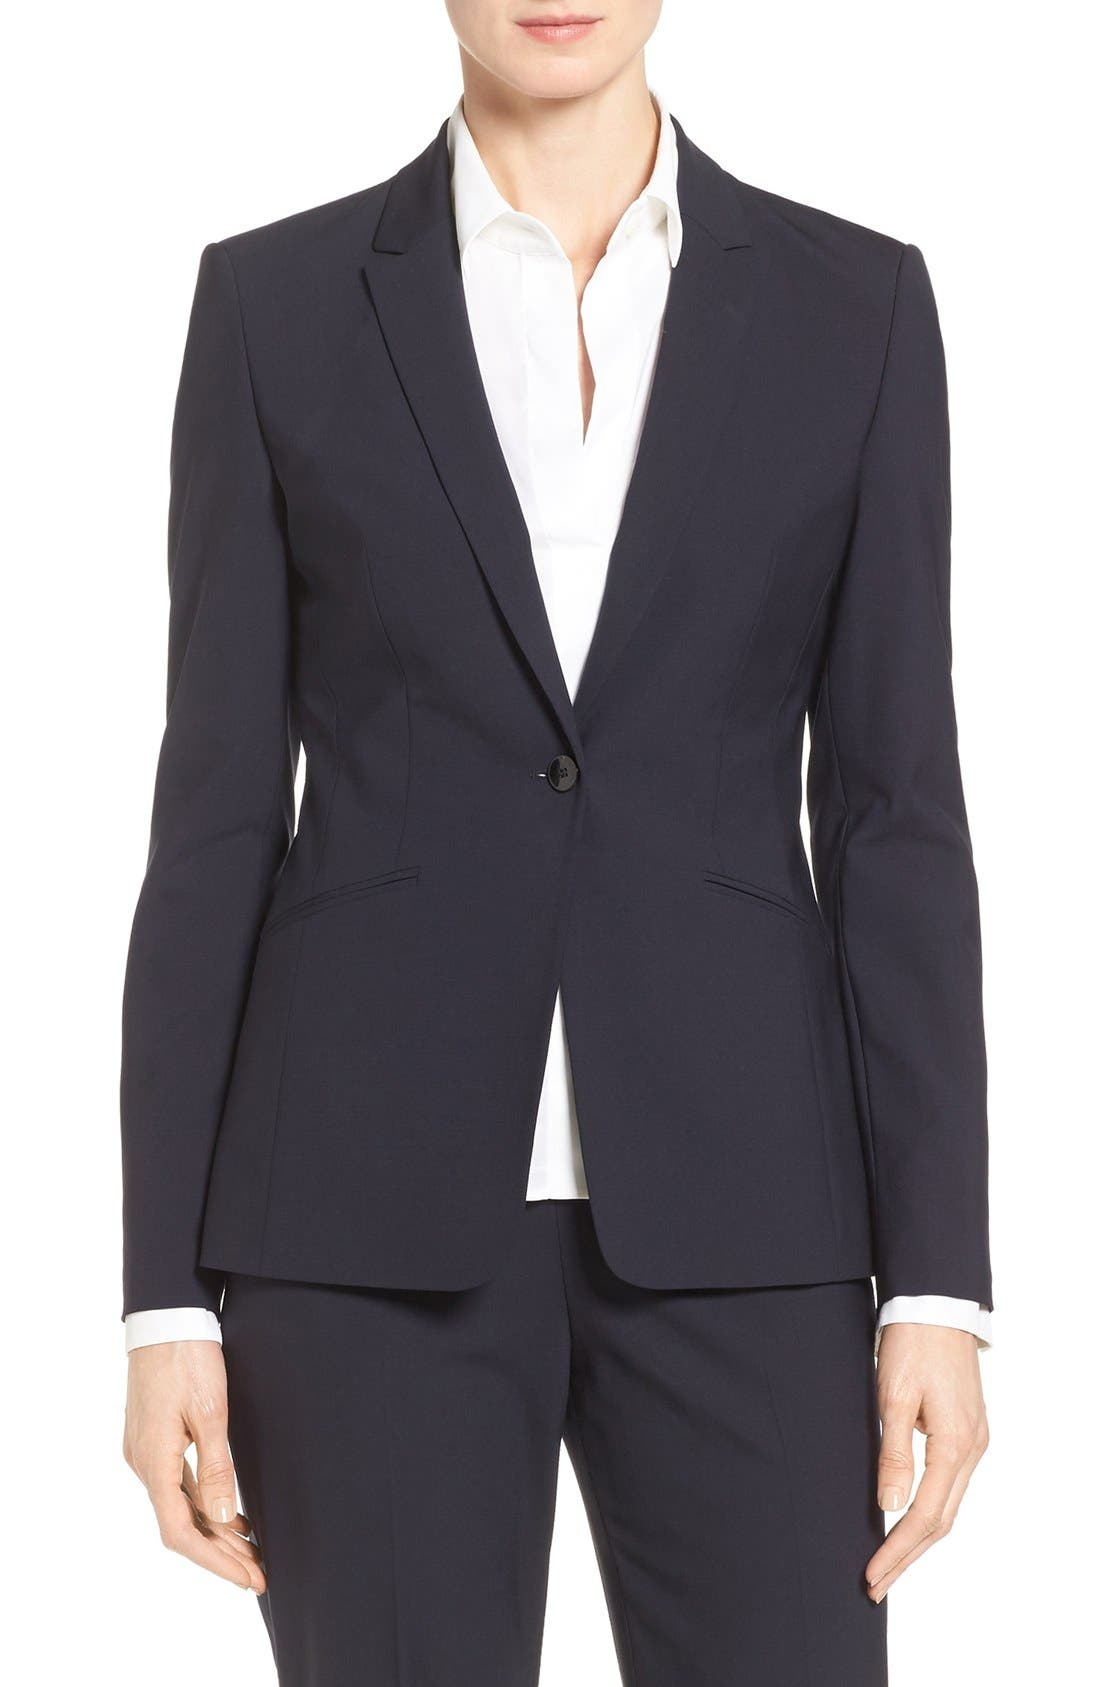 Alternate Image 1 Selected - BOSS 'Jabina' Stretch Wool Suit Jacket